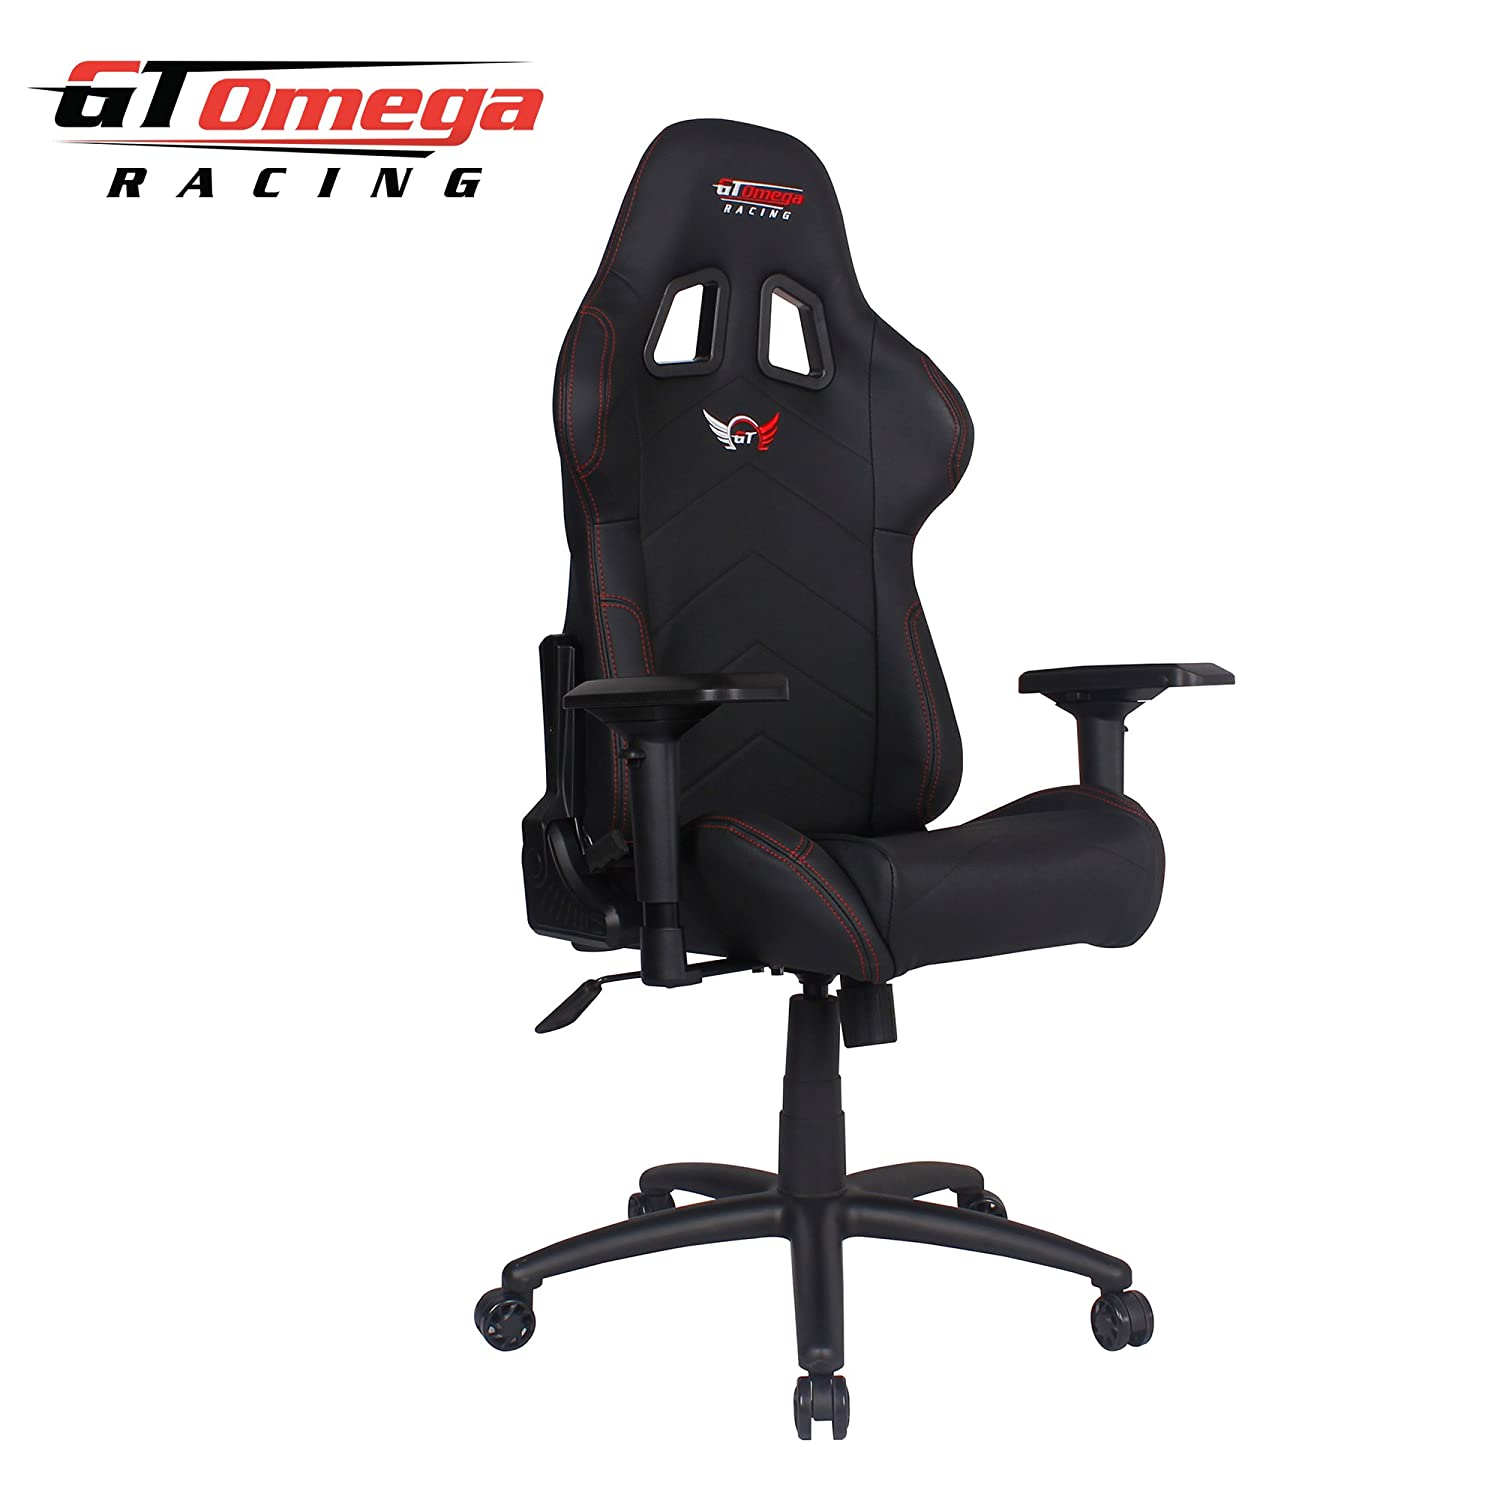 Amazon GT Omega PRO Racing fice Chair Black Leather